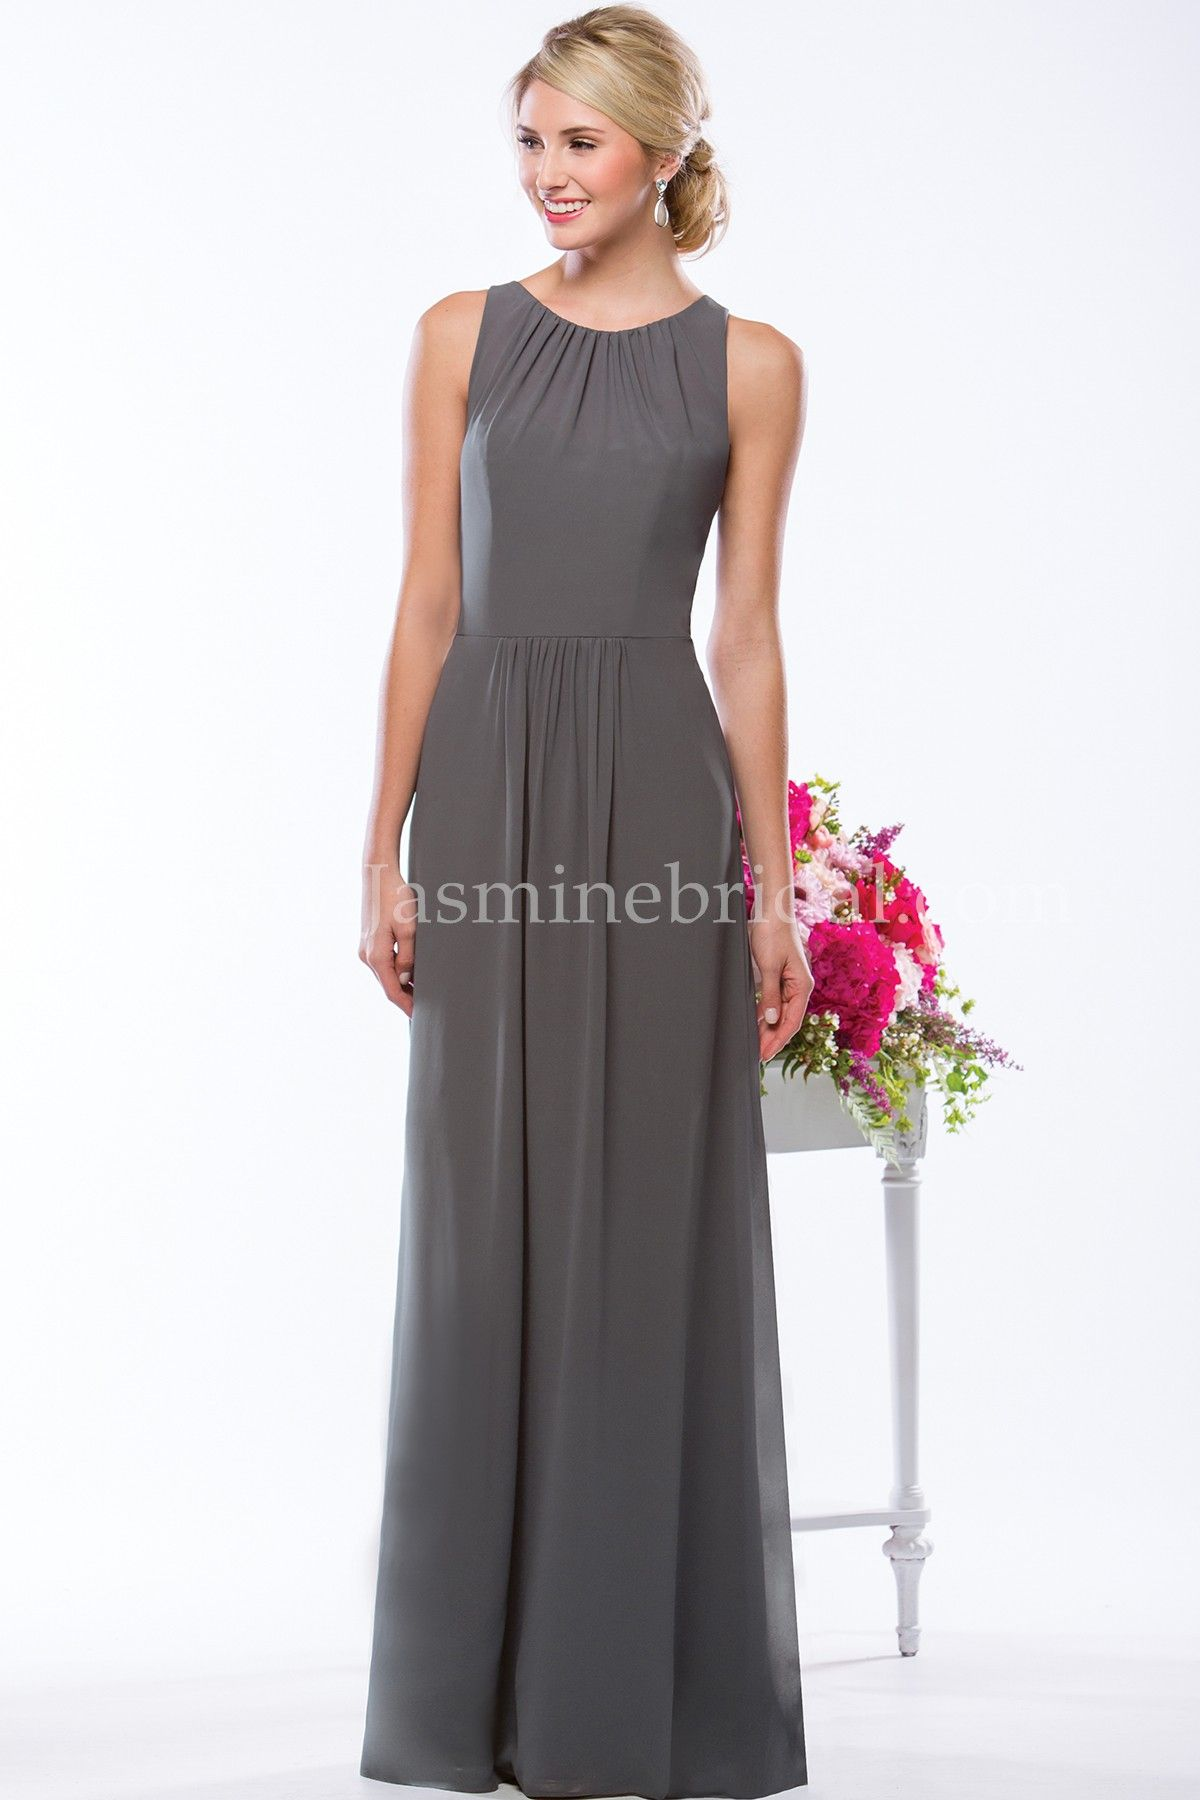 Jasmine bridal bridesmaid dress jasmine bridesmaids style p176052 jasmine bridal bridesmaid dress jasmine bridesmaids style p176052 in iron chic and stylish ombrellifo Image collections